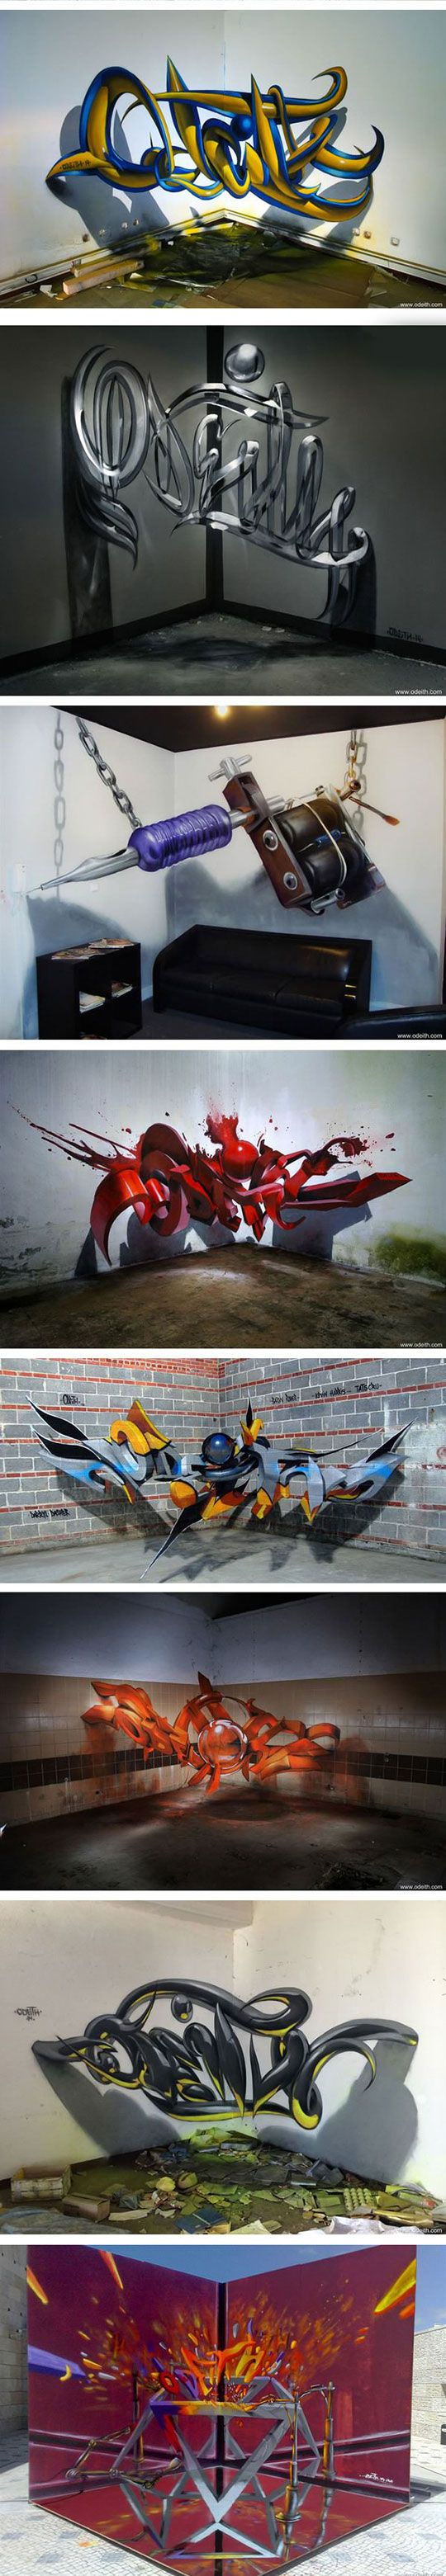 Portuguese Street Artist Creates Stunning 3D Graffiti That Seems To Float In The…